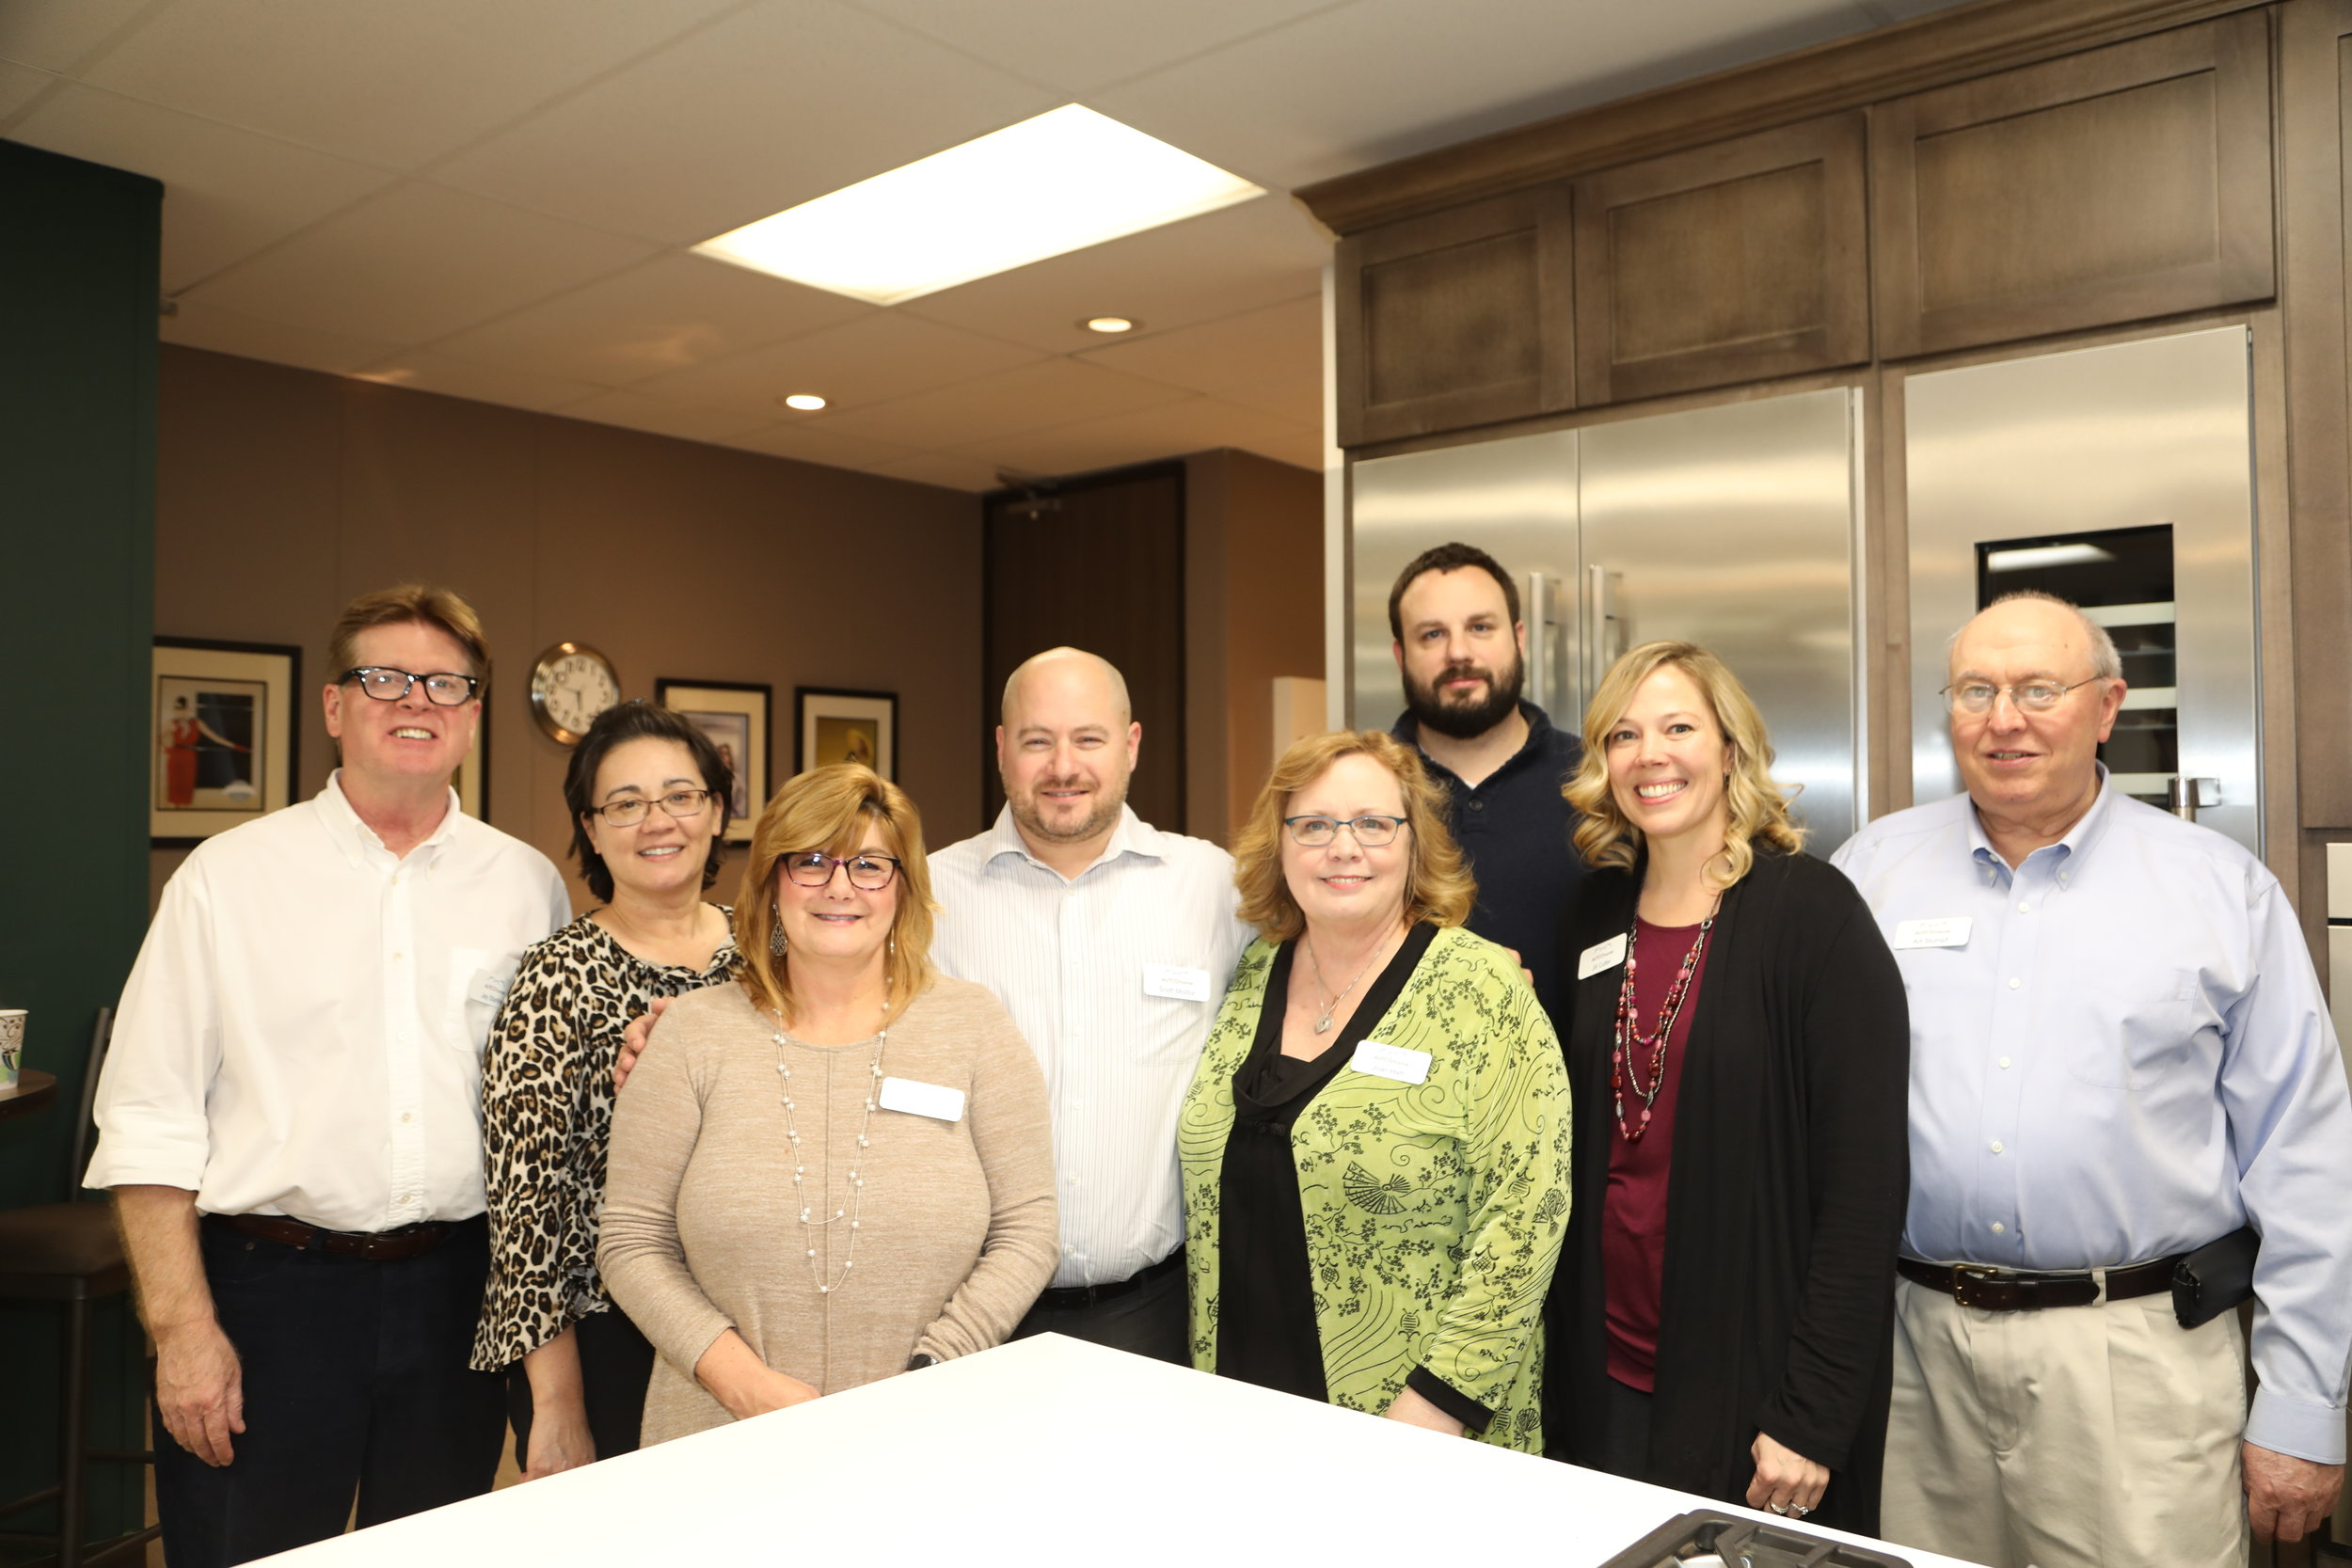 Members of the AUTCO family at an open house for Gaggenau.